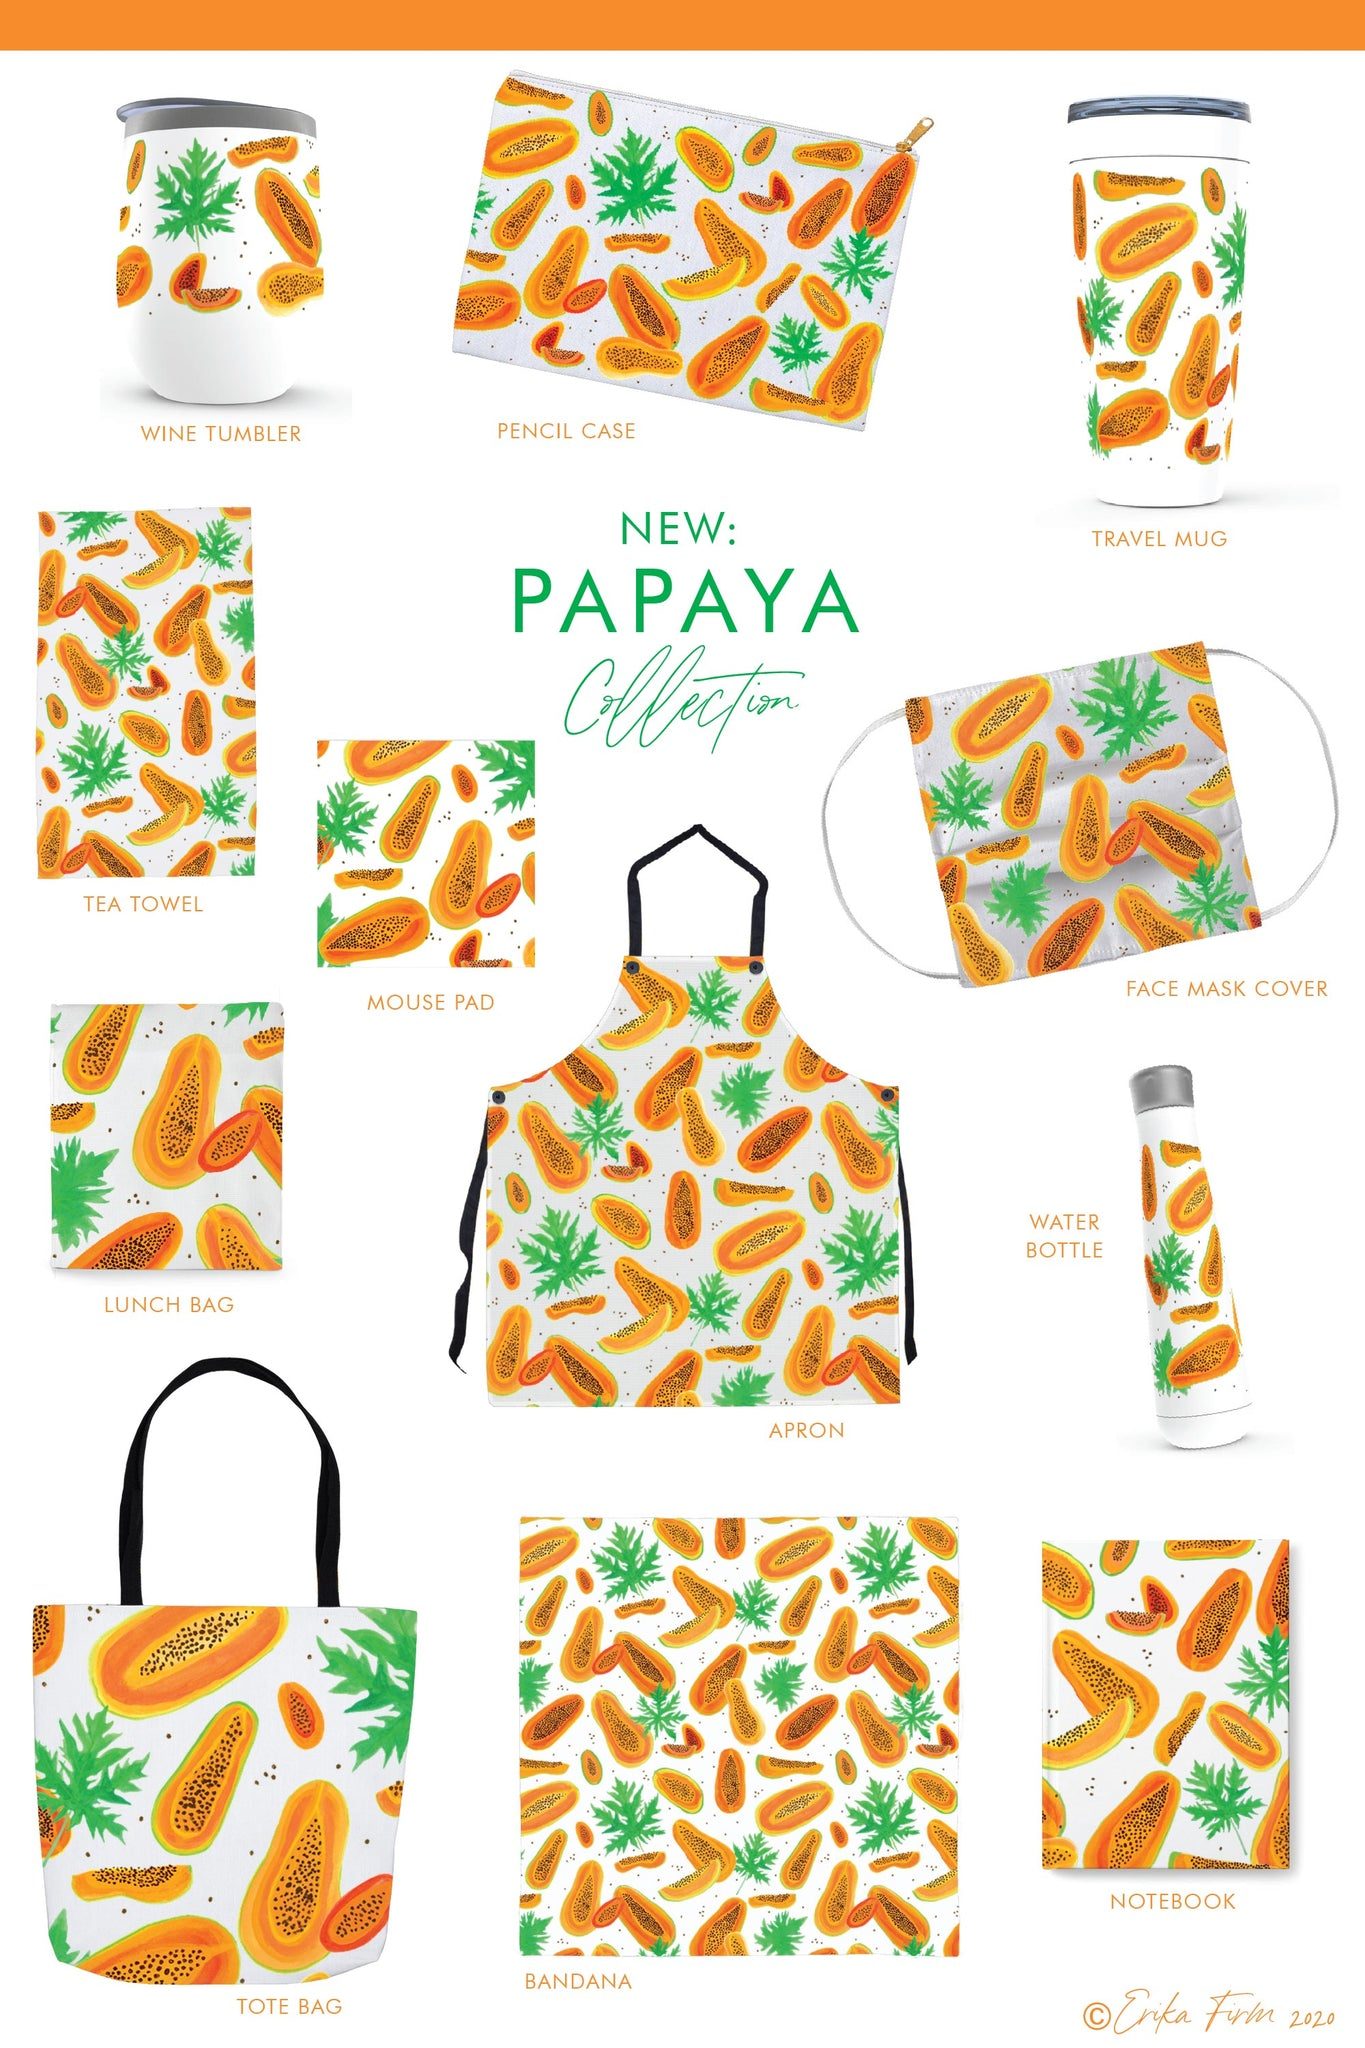 New Papaya Pattern Collection of face masks, tote bags, tea towels, aprons, notebooks, water bottles, travel mugs, and more, by South Carolina artist Erika Firm